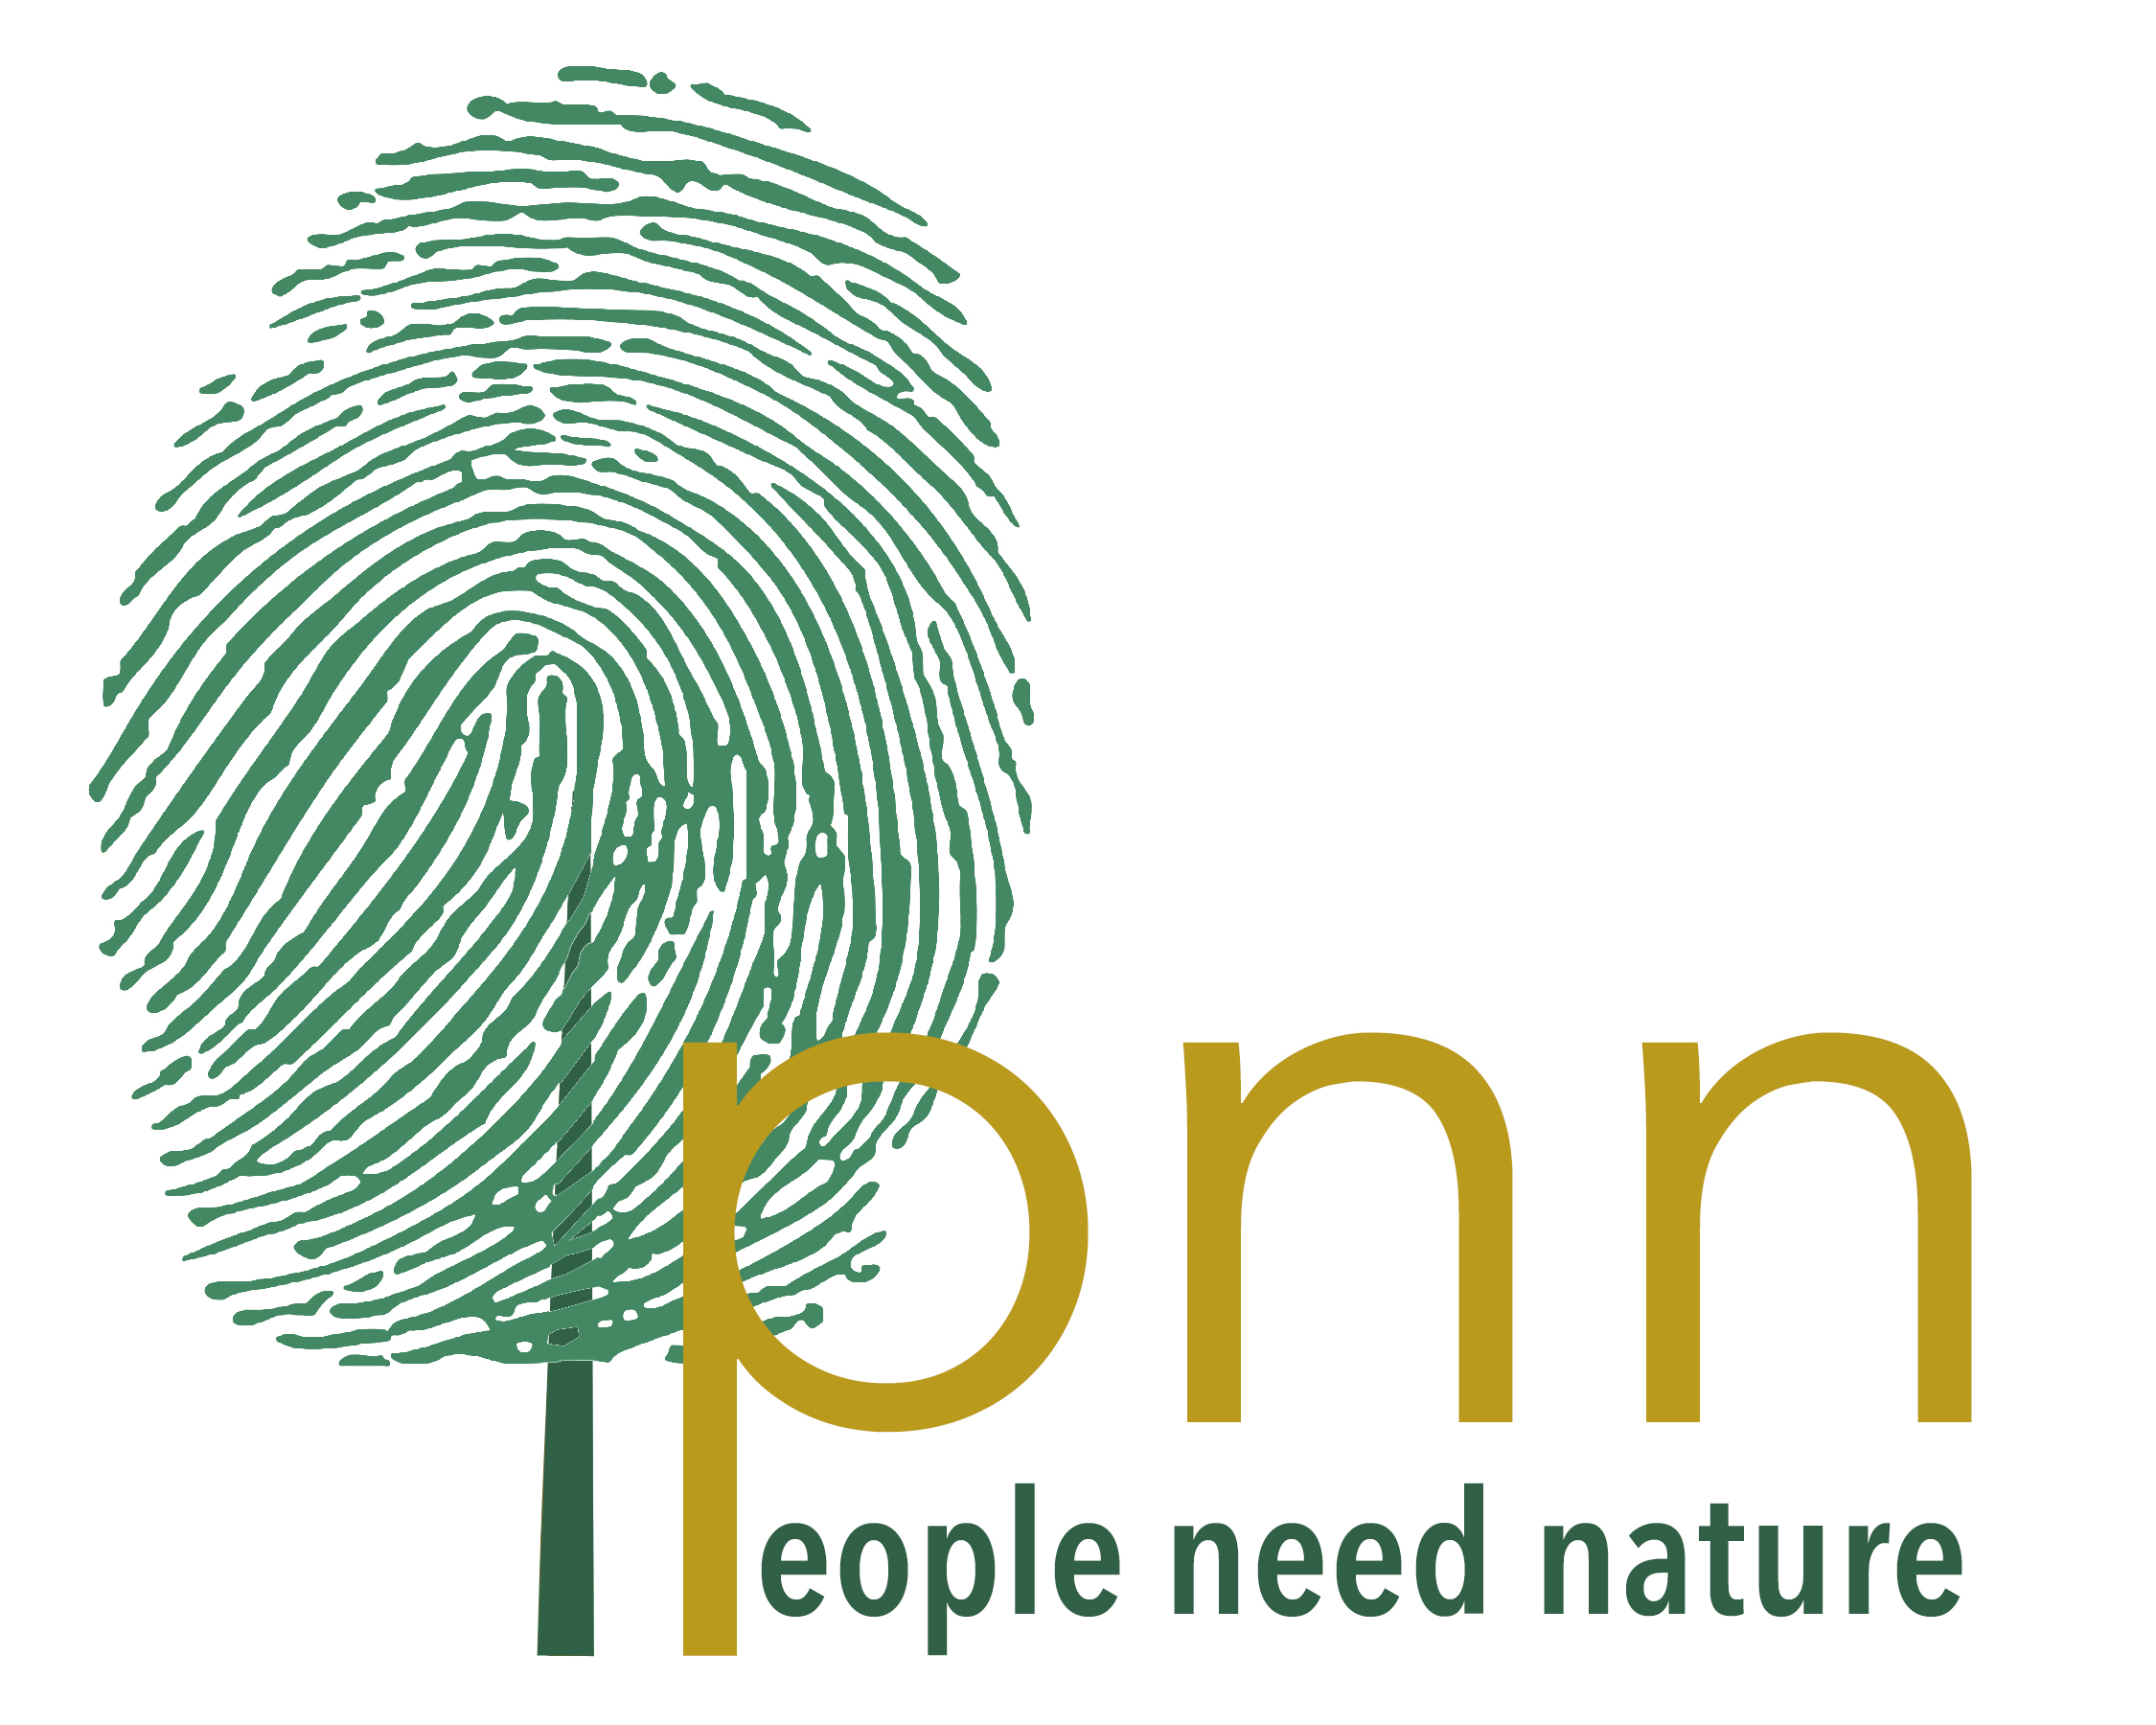 People Need Nature logo with a green fingerprint on a stem that looks like a tree